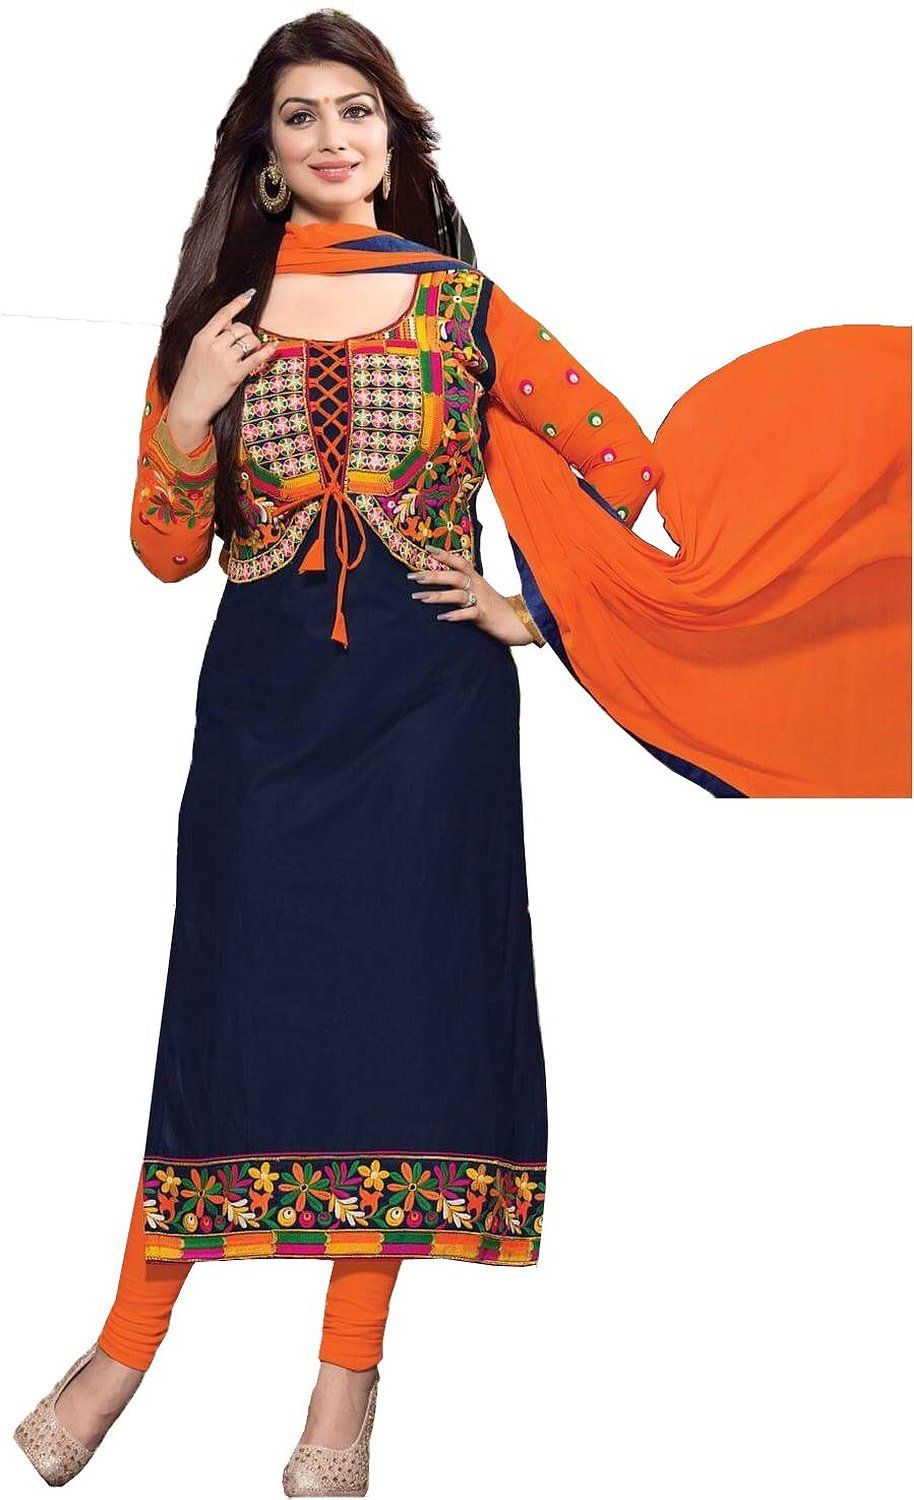 046de9b9b chakudee by blue cotton drees material  Amazon.in  Clothing    Accessories